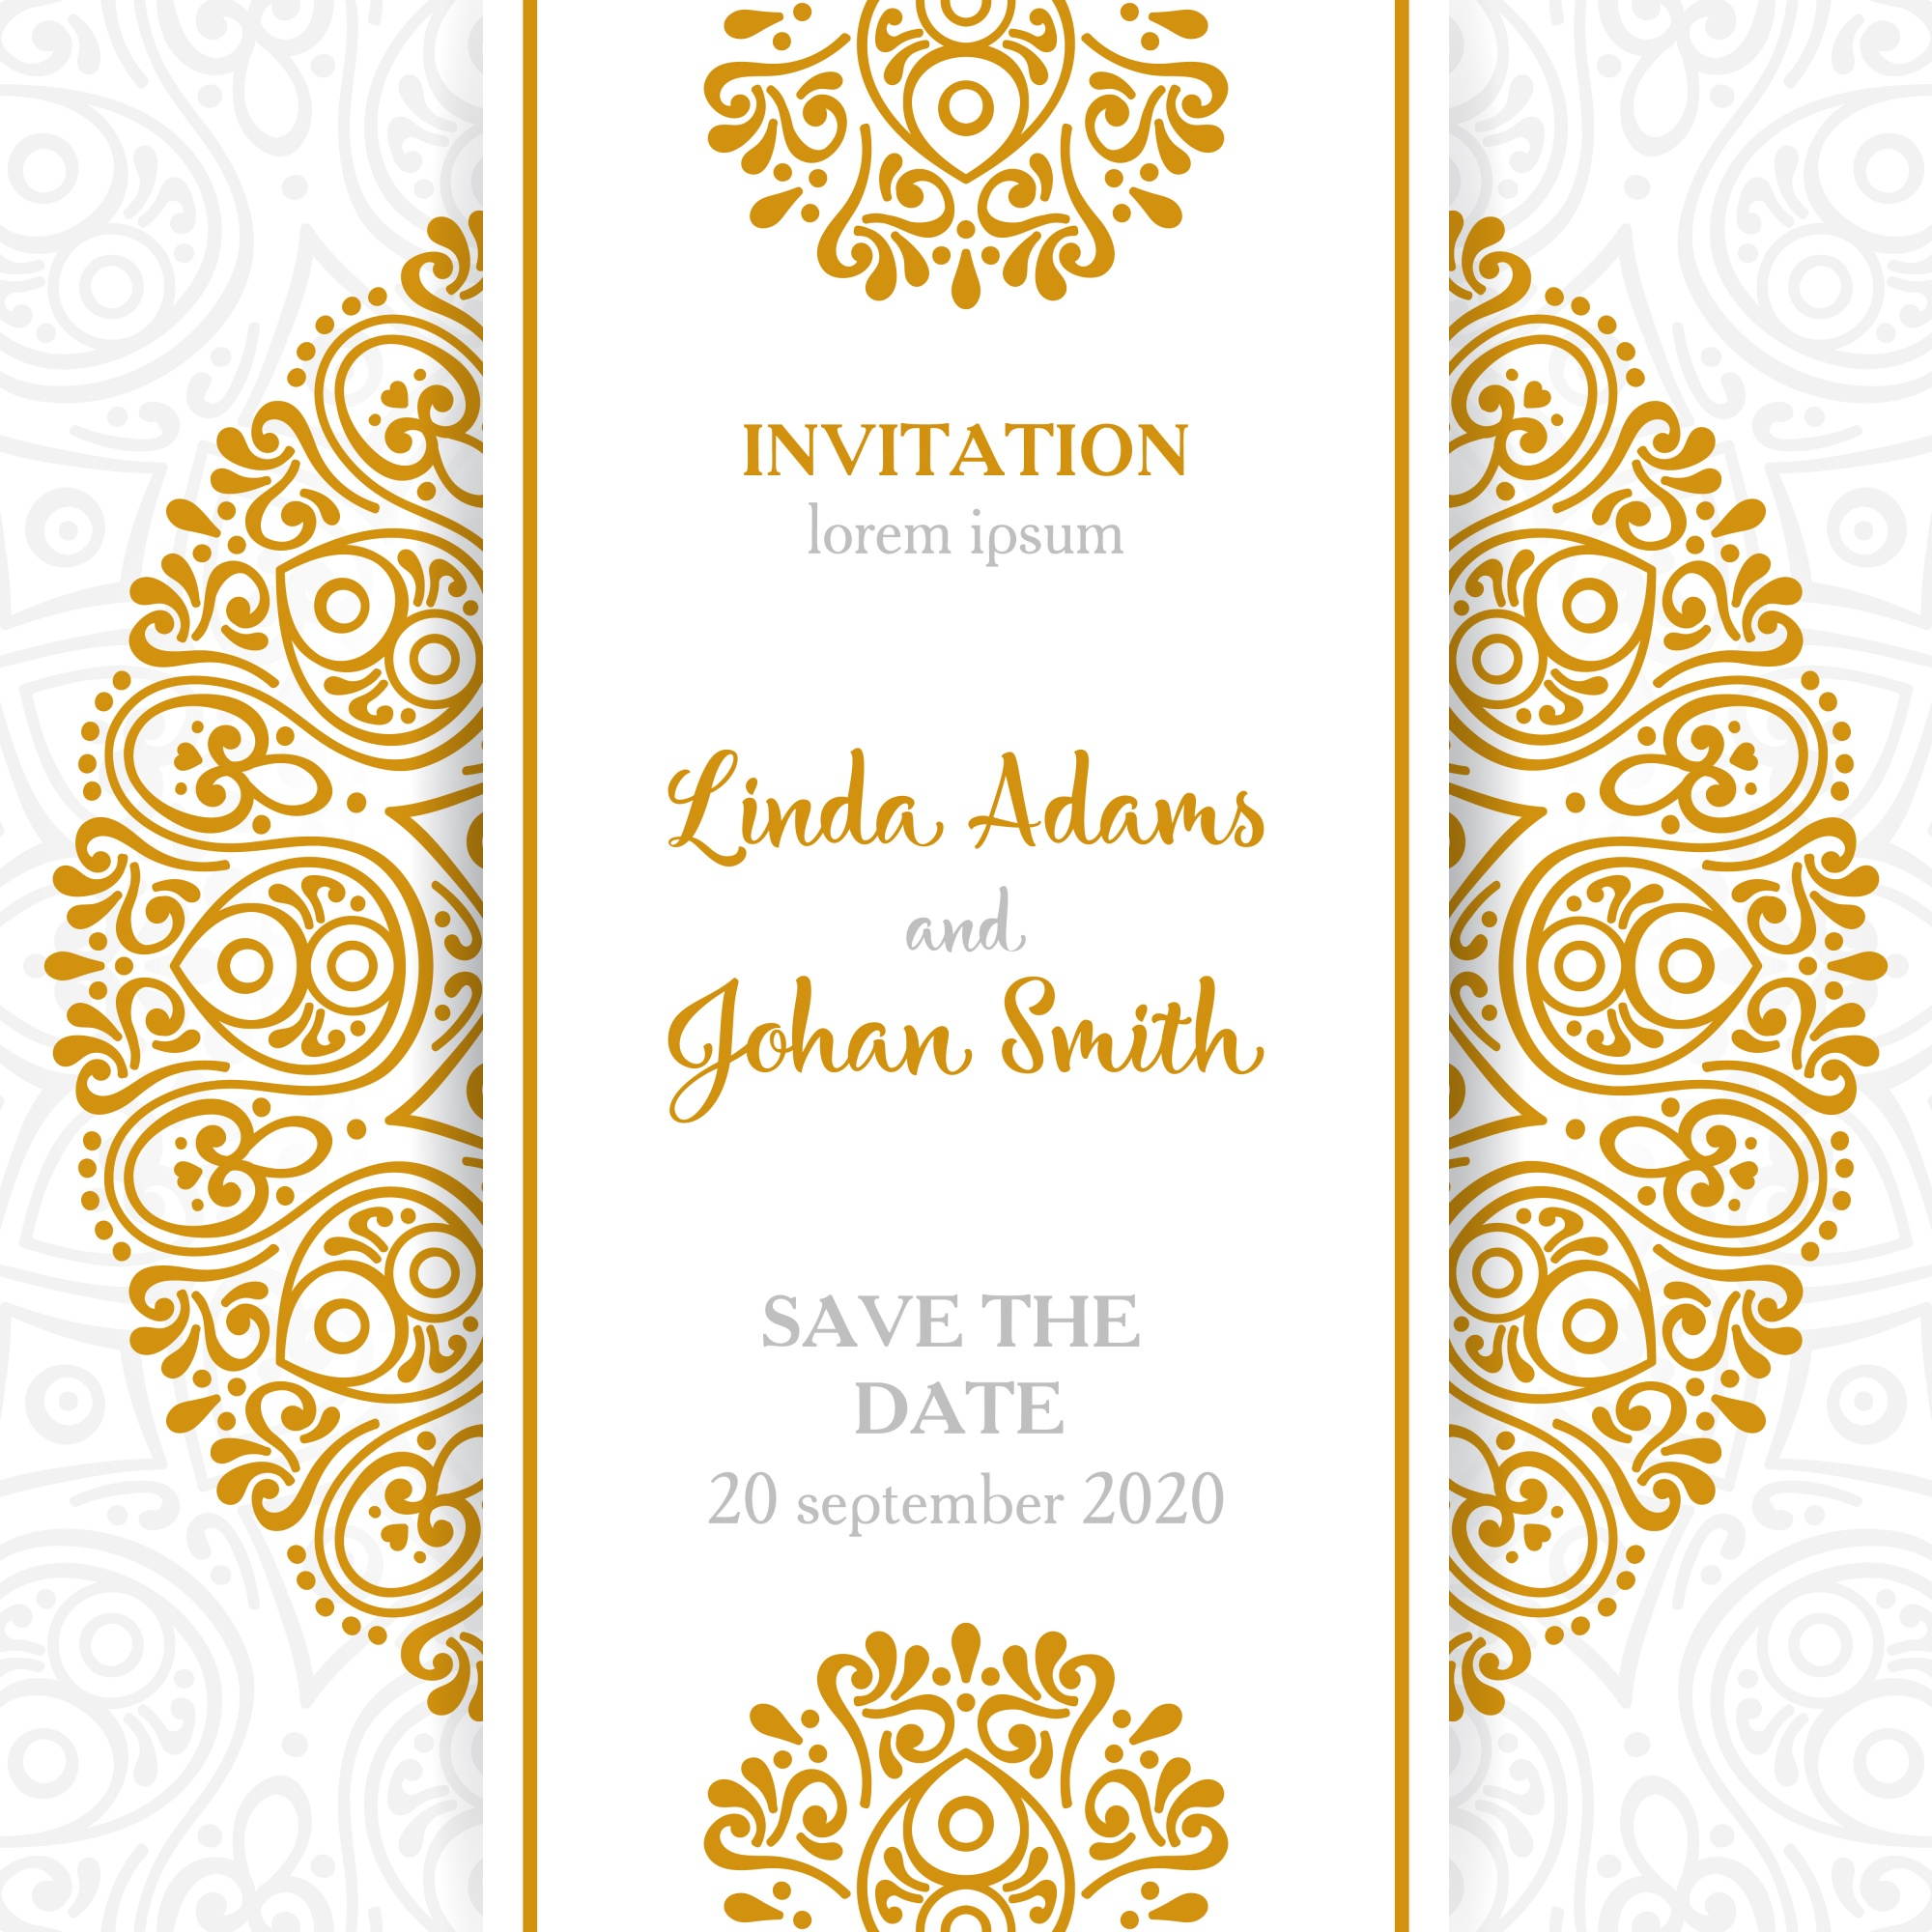 Ornament vectors 92100 free files in eps format vintage wedding invitation with mandala stopboris Images